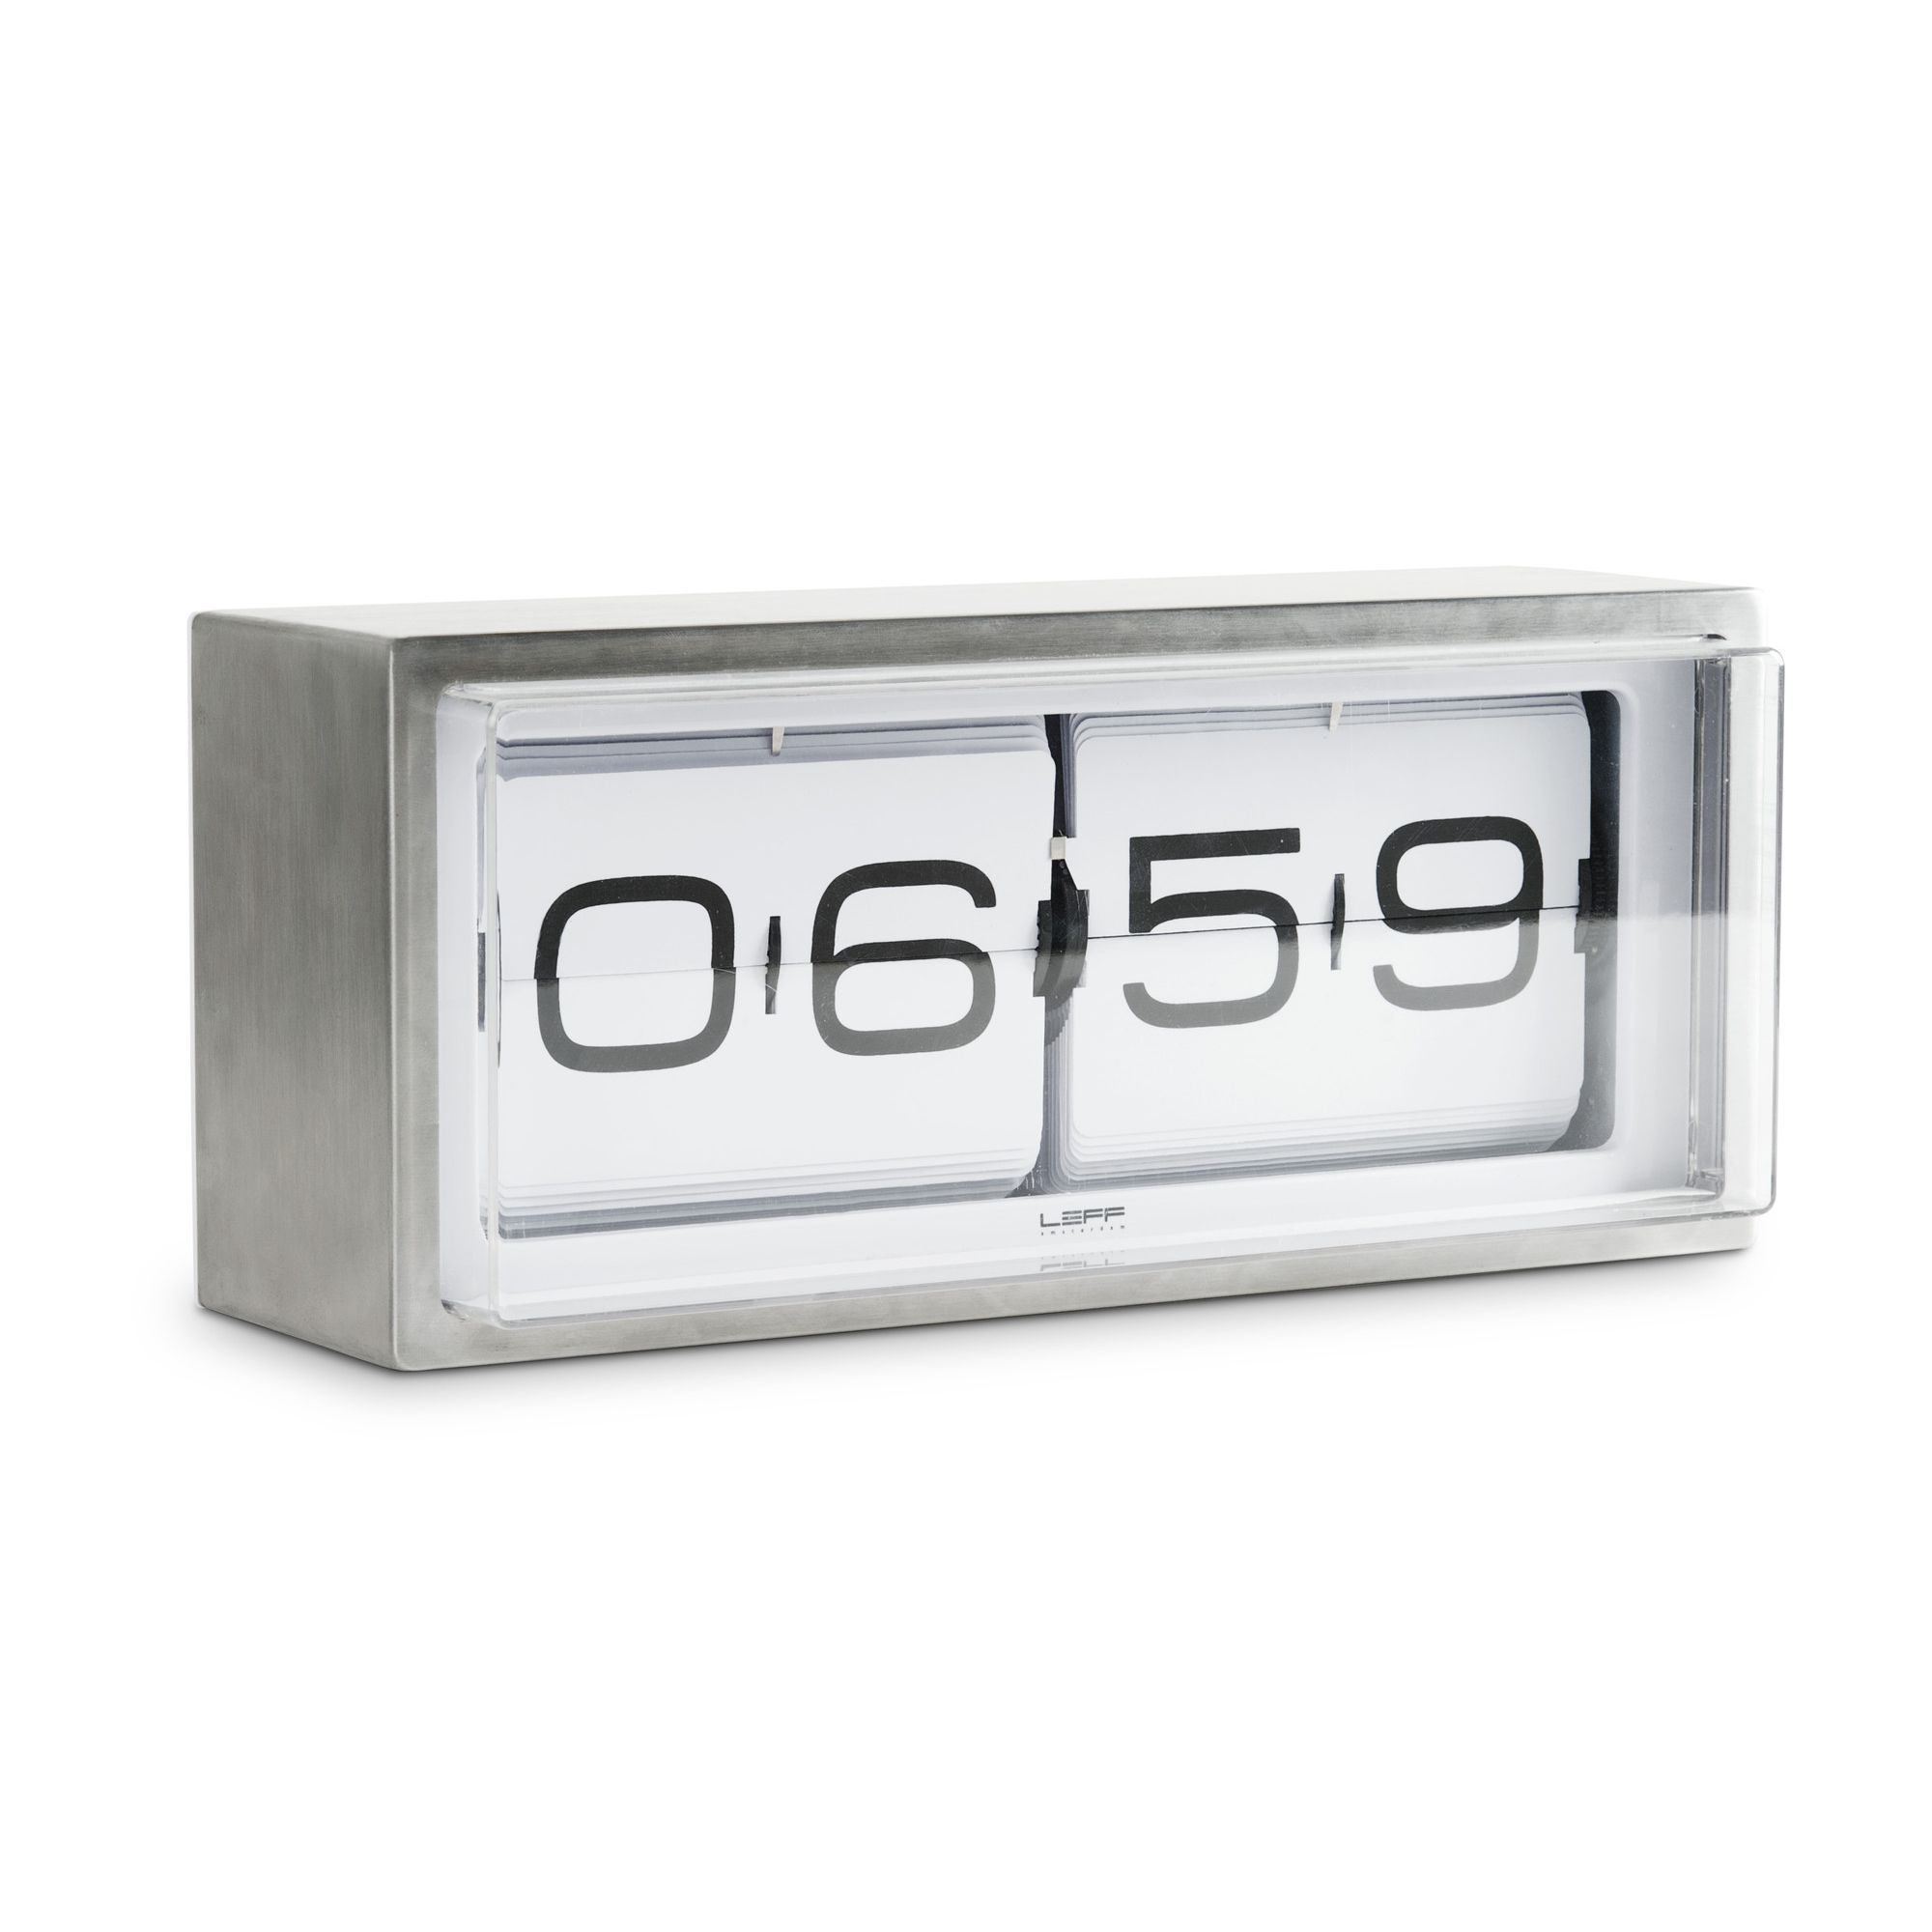 Leff Brick Wall/Desk Clock with White Dial in Stainless Steel - AM/PM at Tesco Direct